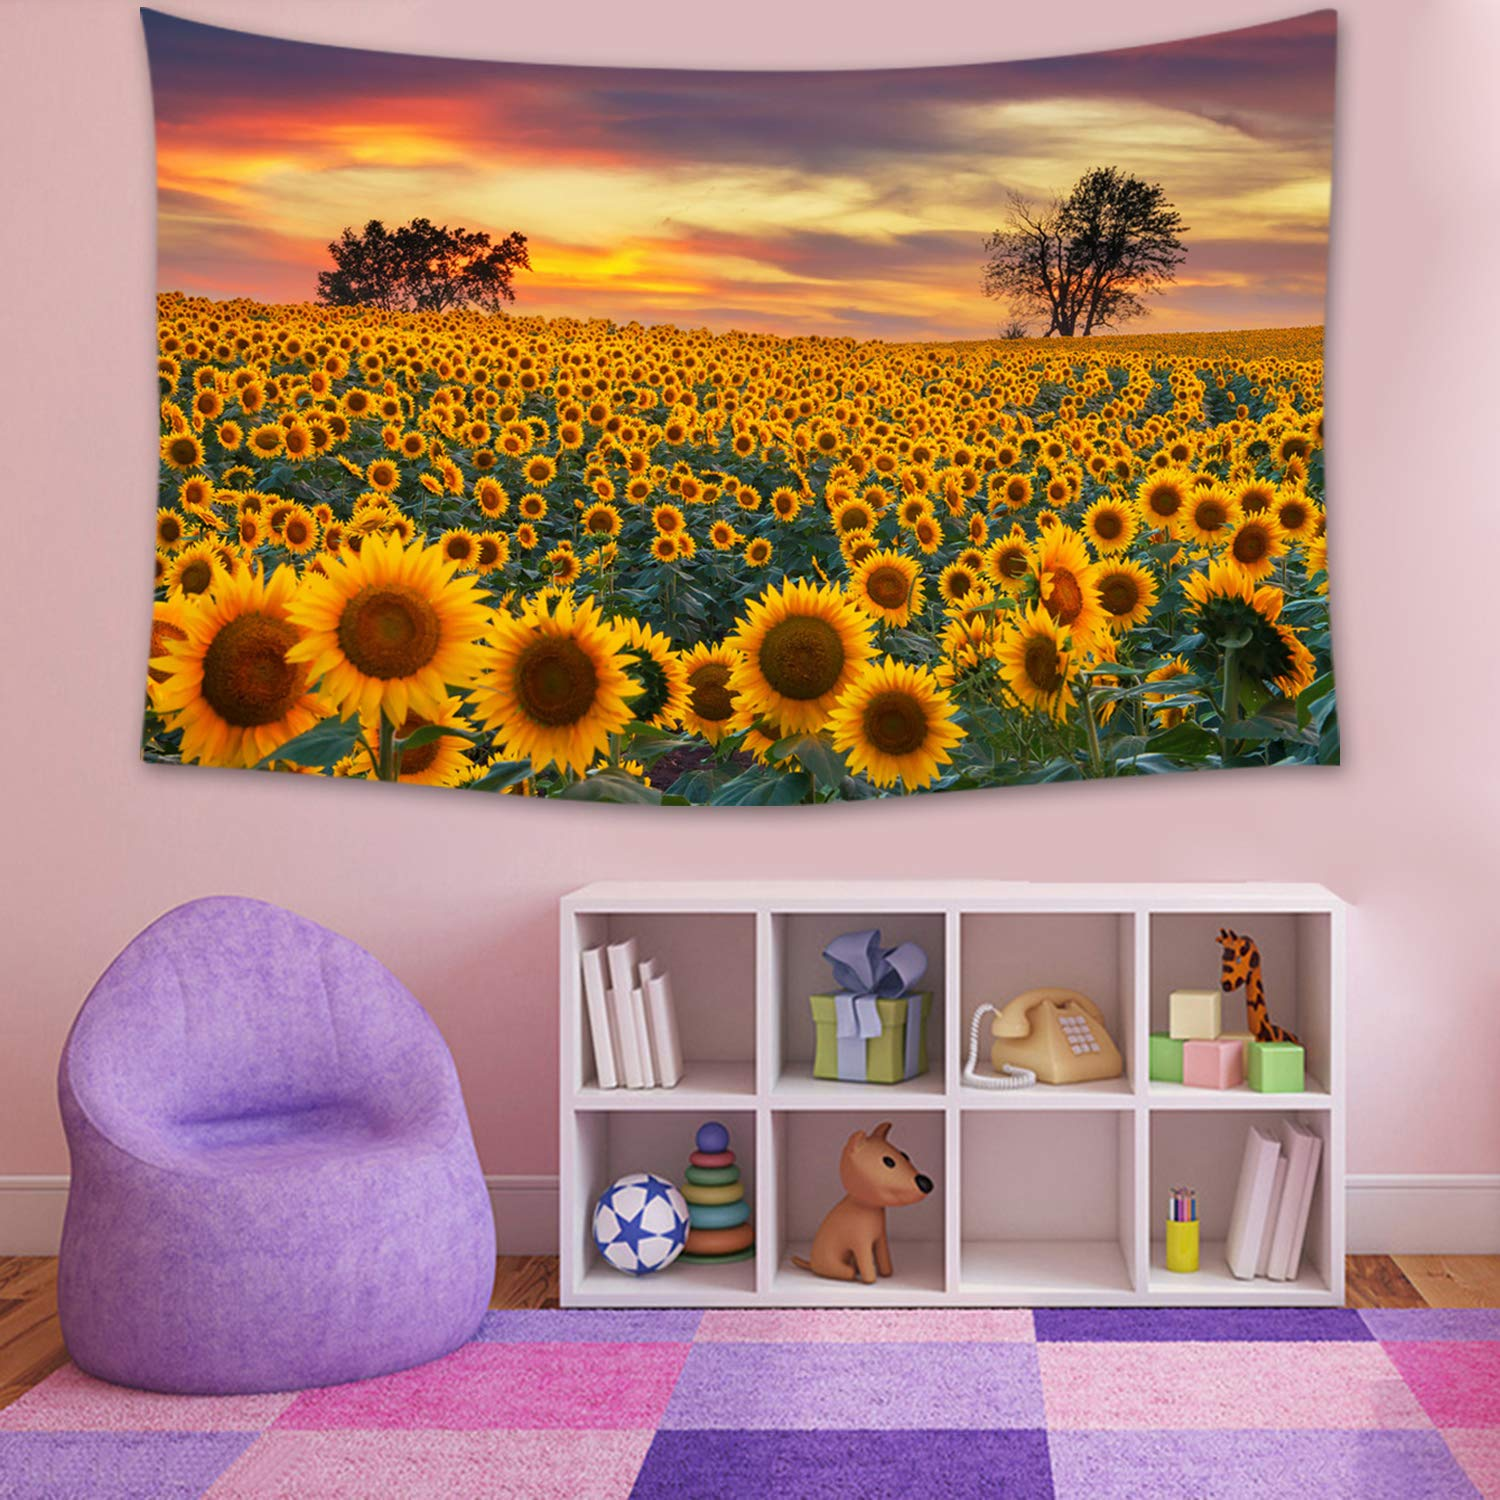 Sunflower at Sunset Tapestry Yellow Landscape Tapestry Wall Hanging Home Decor Wall Decor Living Room Bedroom Dorm Room 79X59 Inch